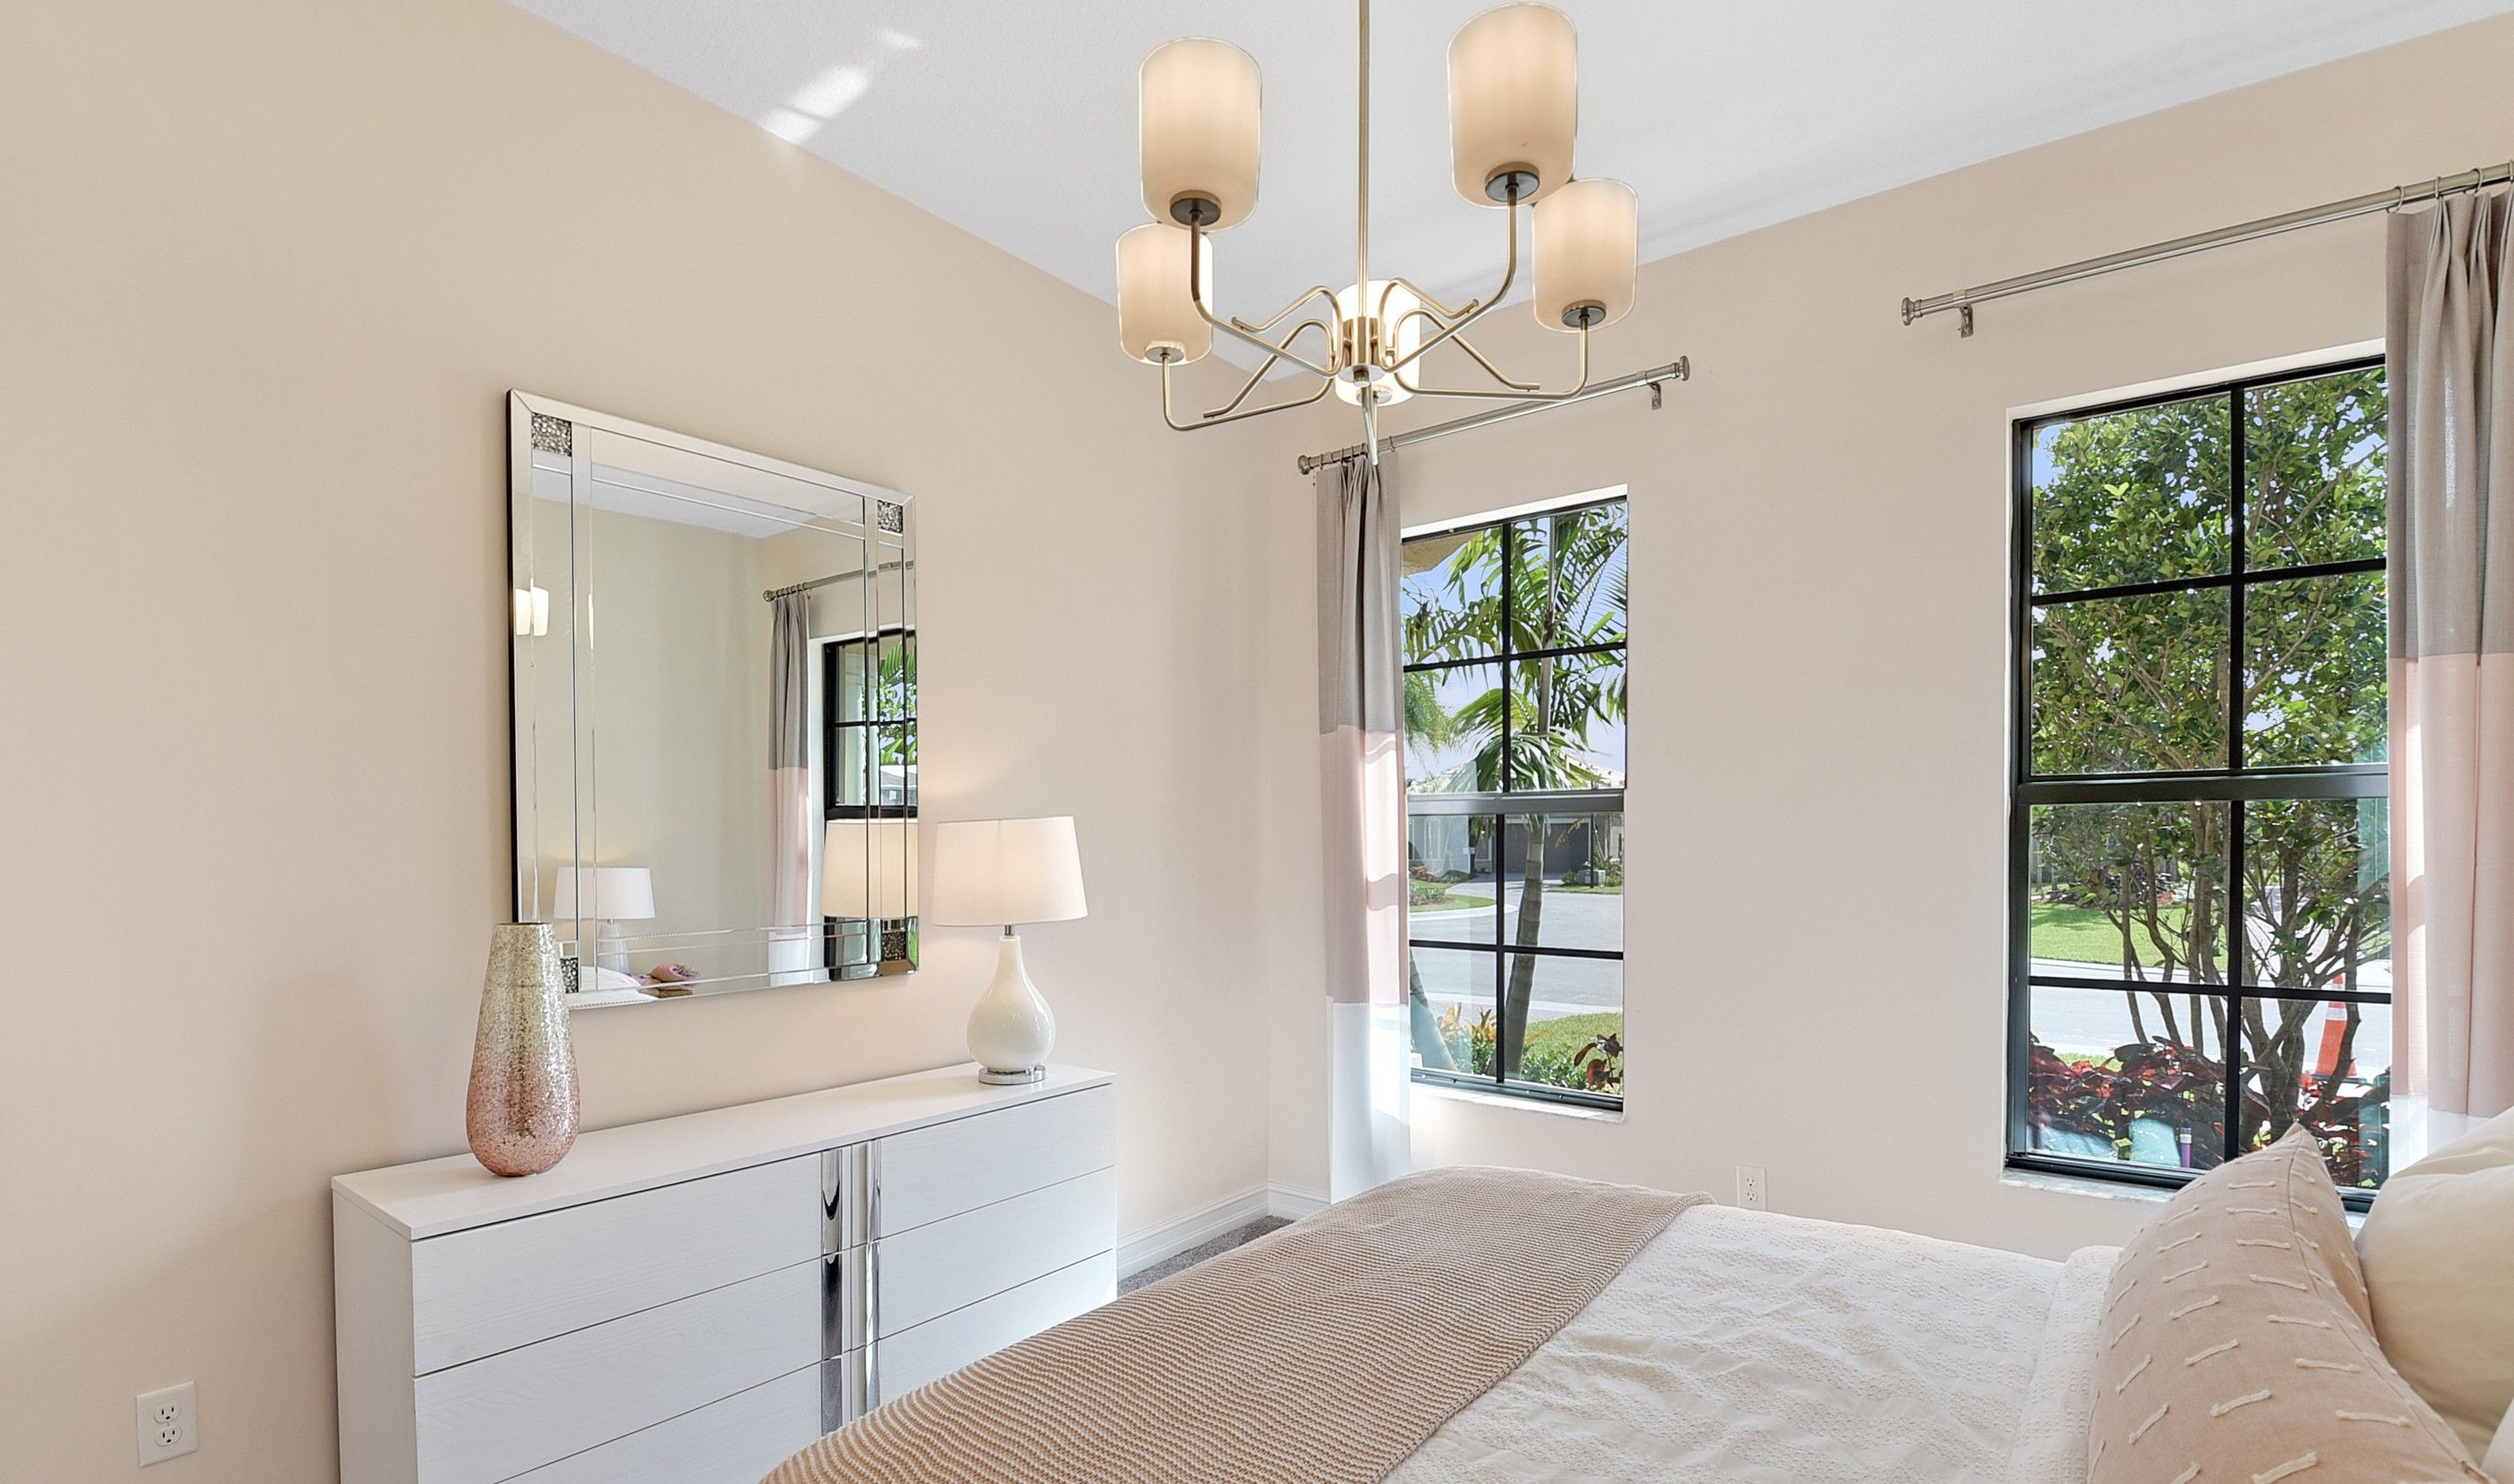 Bedroom featured in the Azure By K. Hovnanian's® Four Seasons in Broward County-Ft. Lauderdale, FL